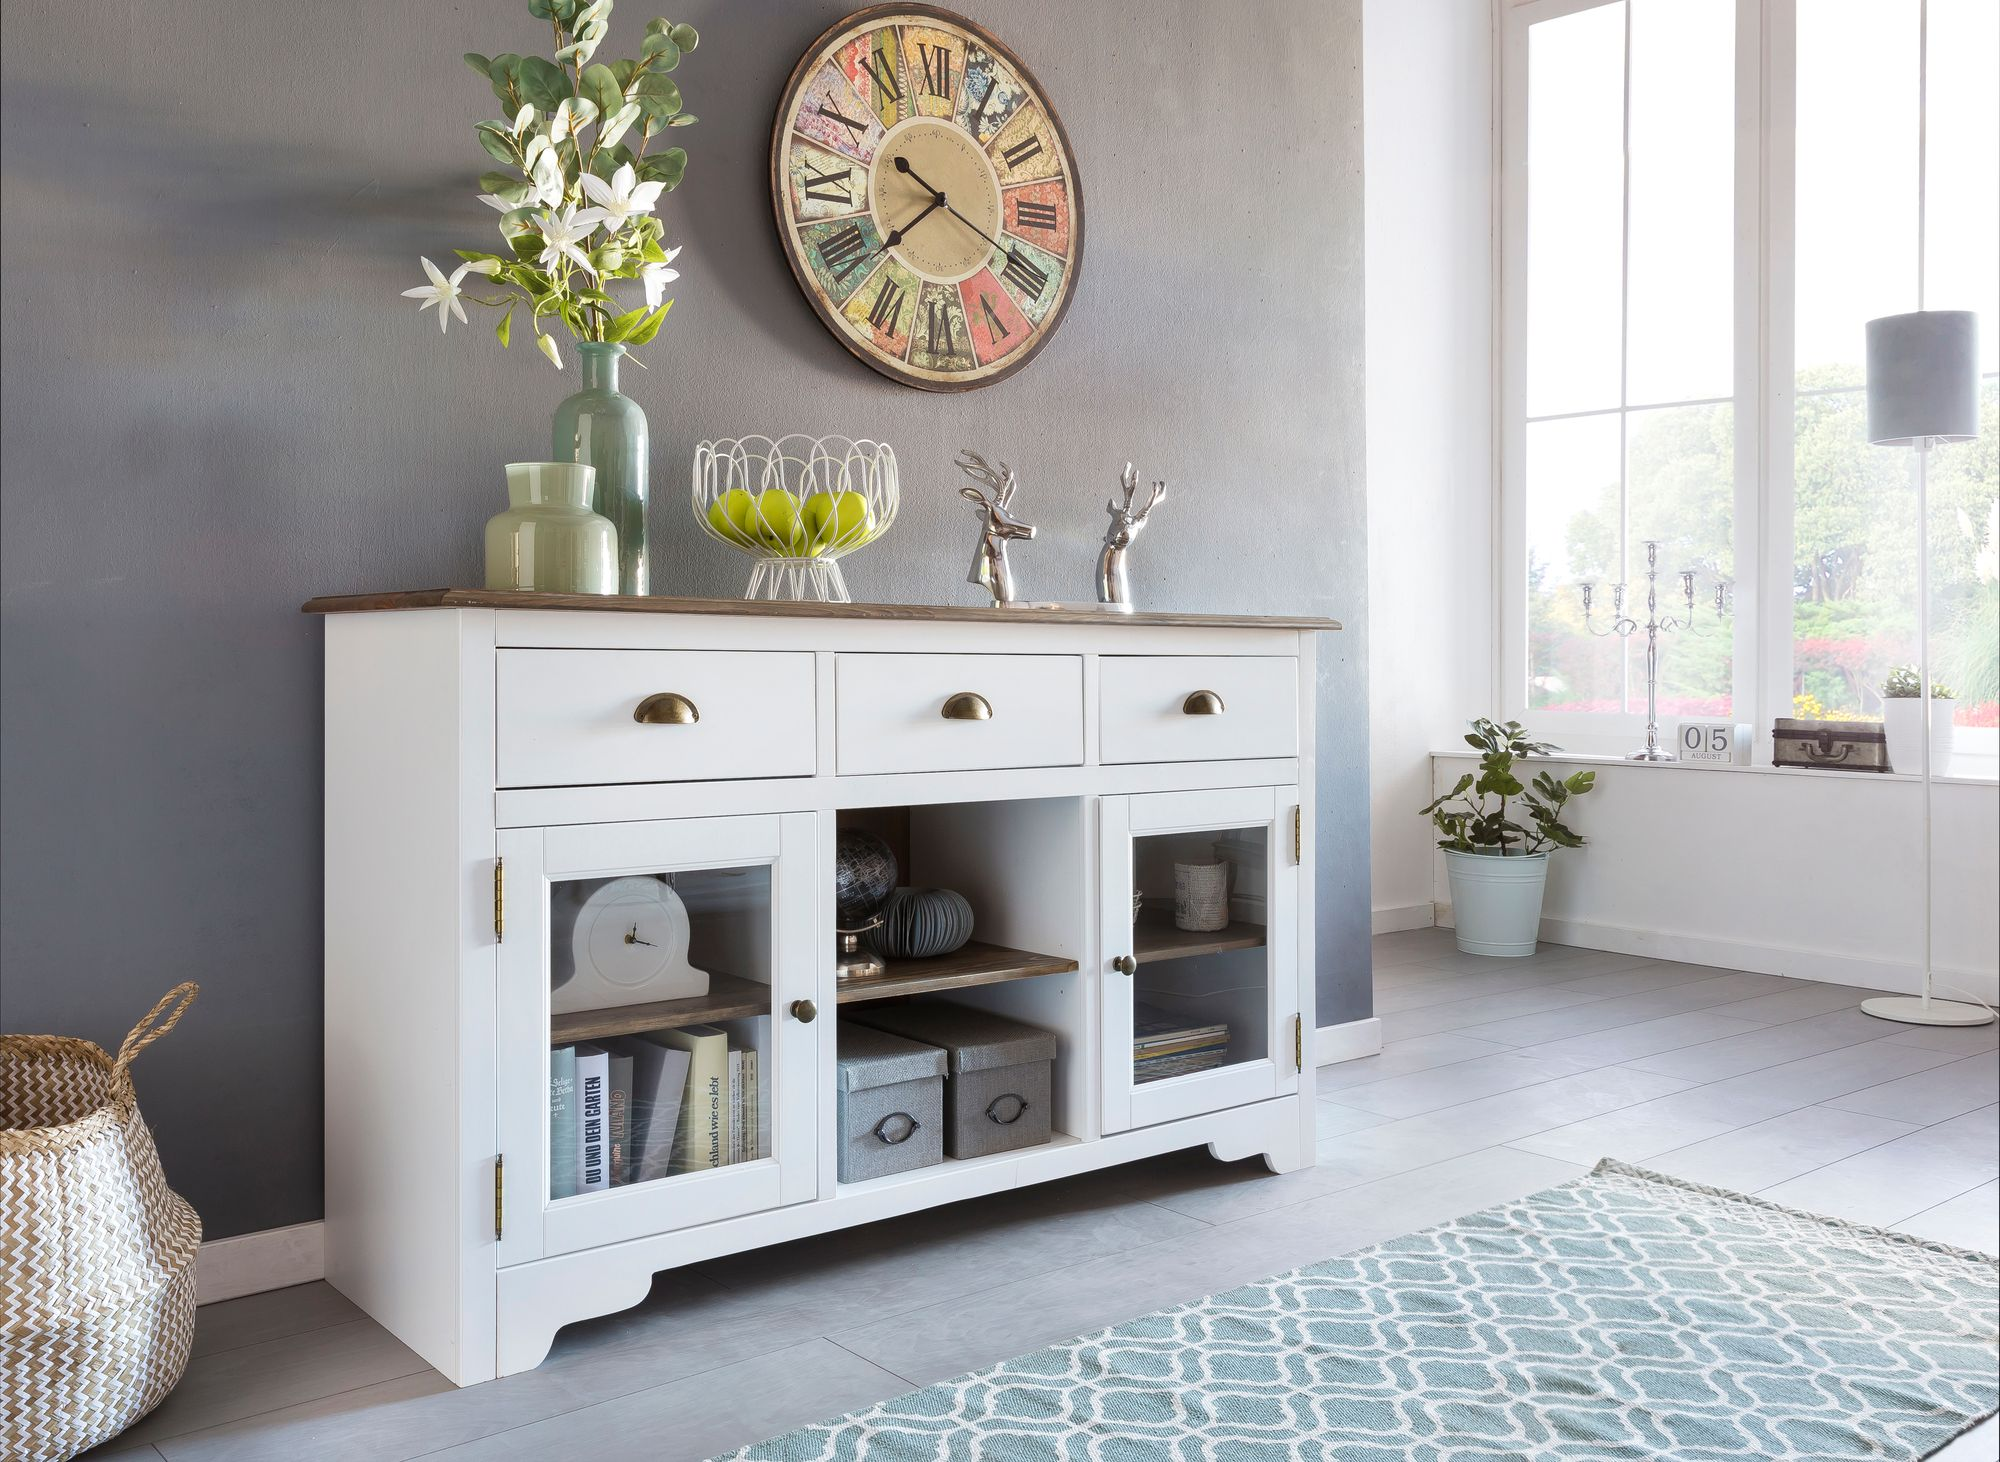 Finebuy Sideboard Peso Kommode Anrichte Holz Massiv Glas Weiss